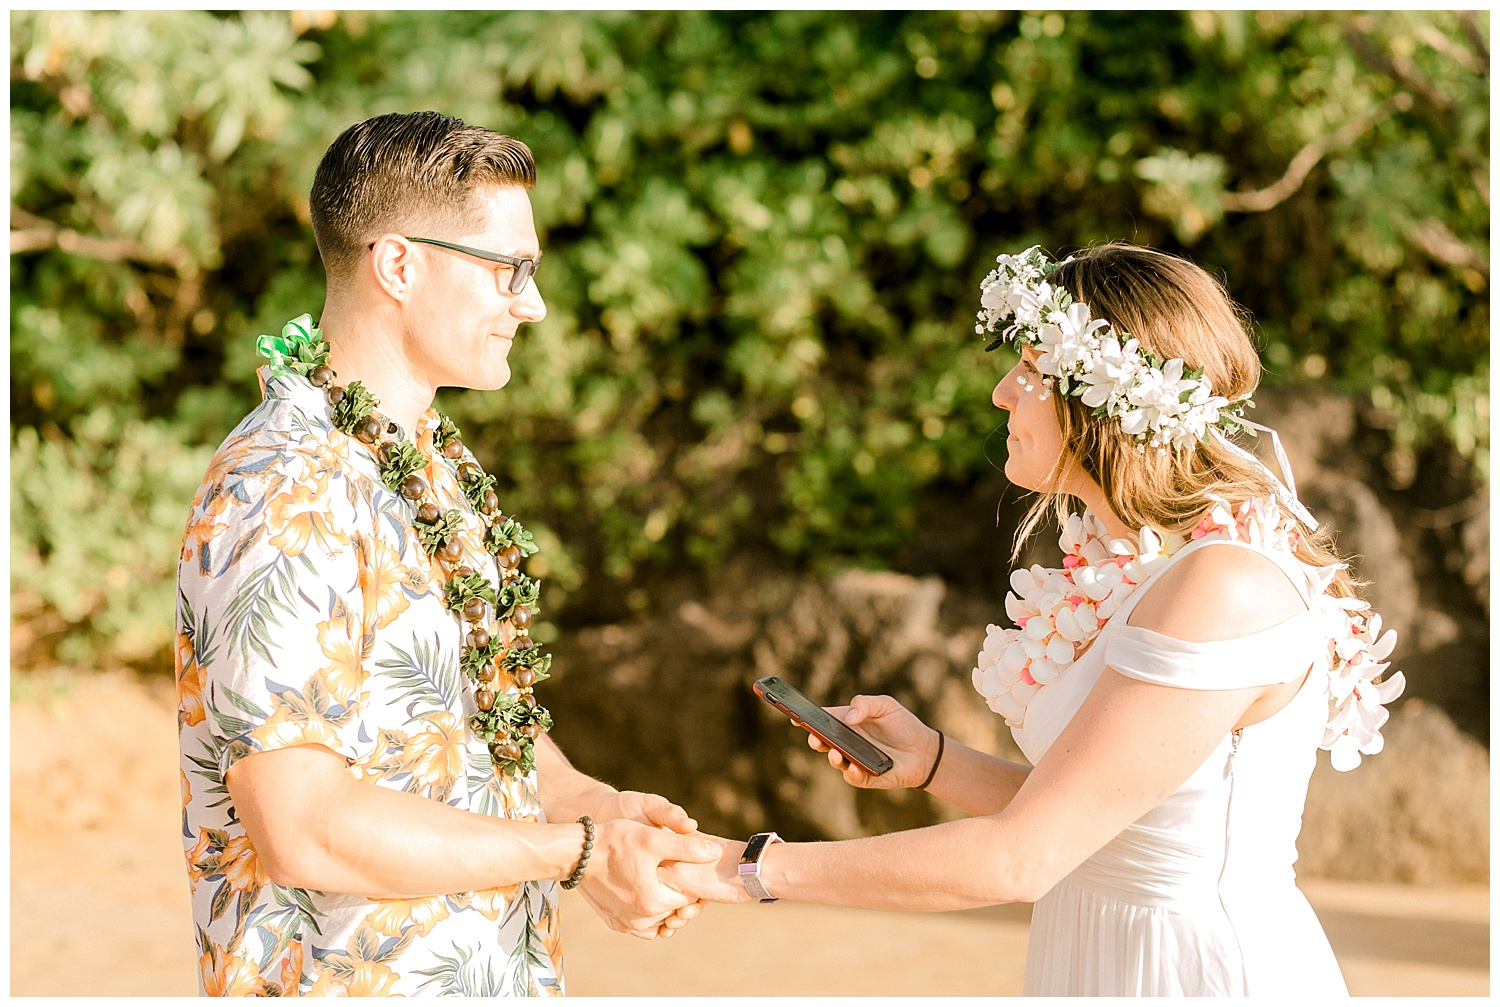 Maui-Elopement-Photography-Paipu-Beach-Maui_0003.jpg